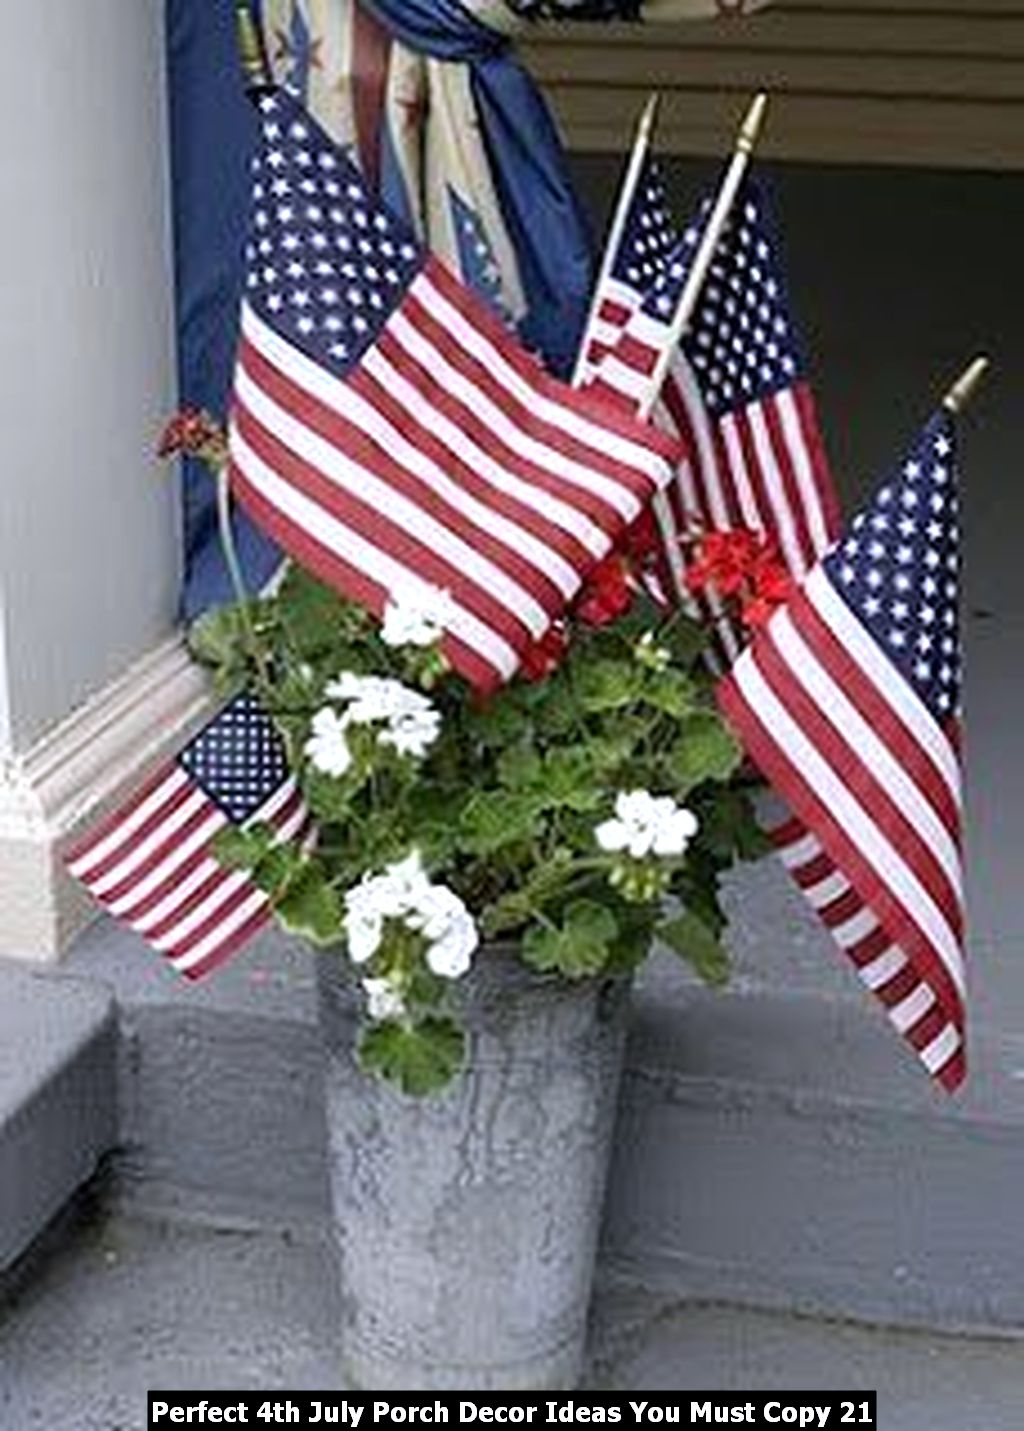 Perfect 4th July Porch Decor Ideas You Must Copy 21